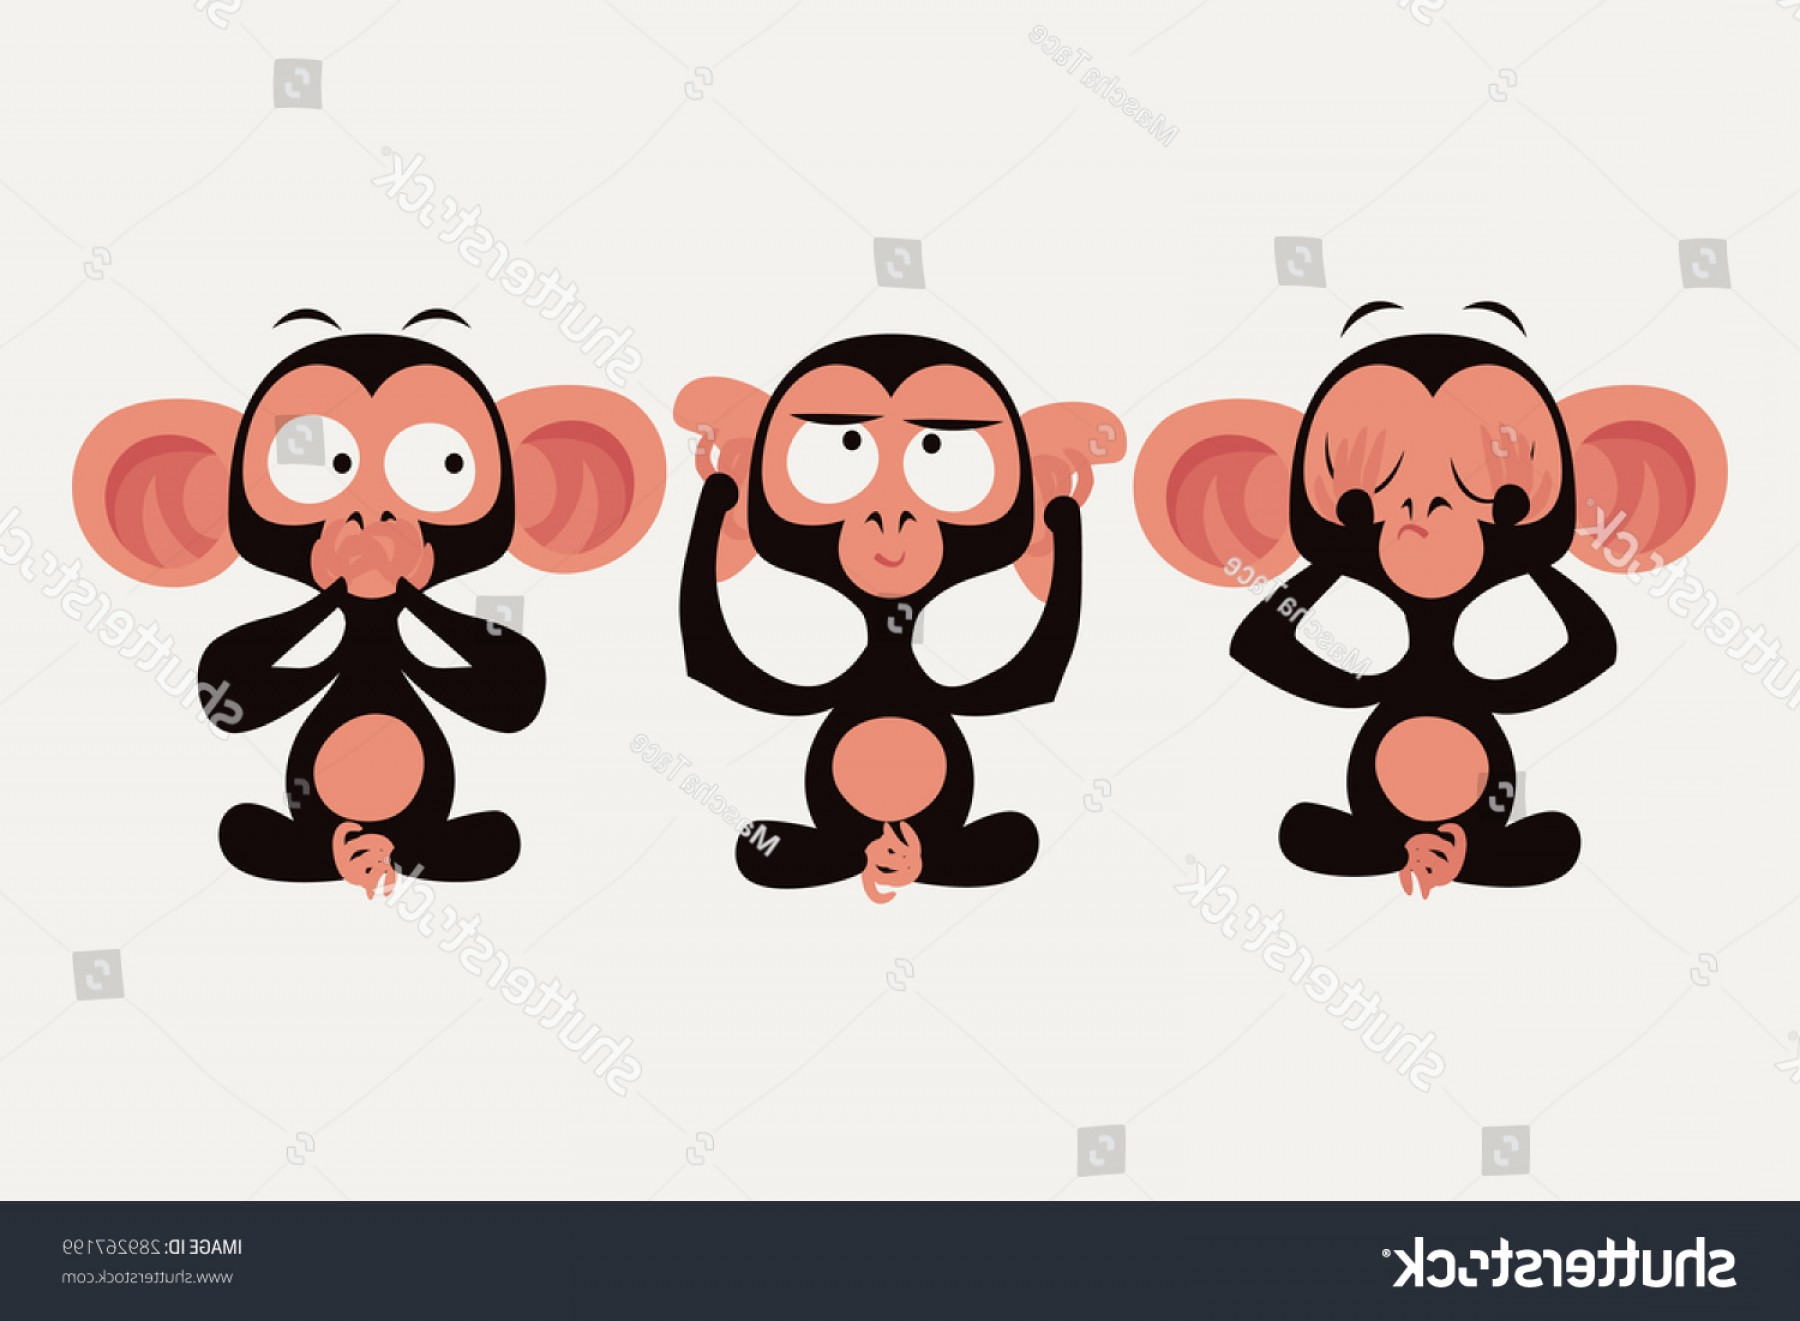 Cool Evil Vectors: Shutterstock Three Wise Monkeys Vector Character